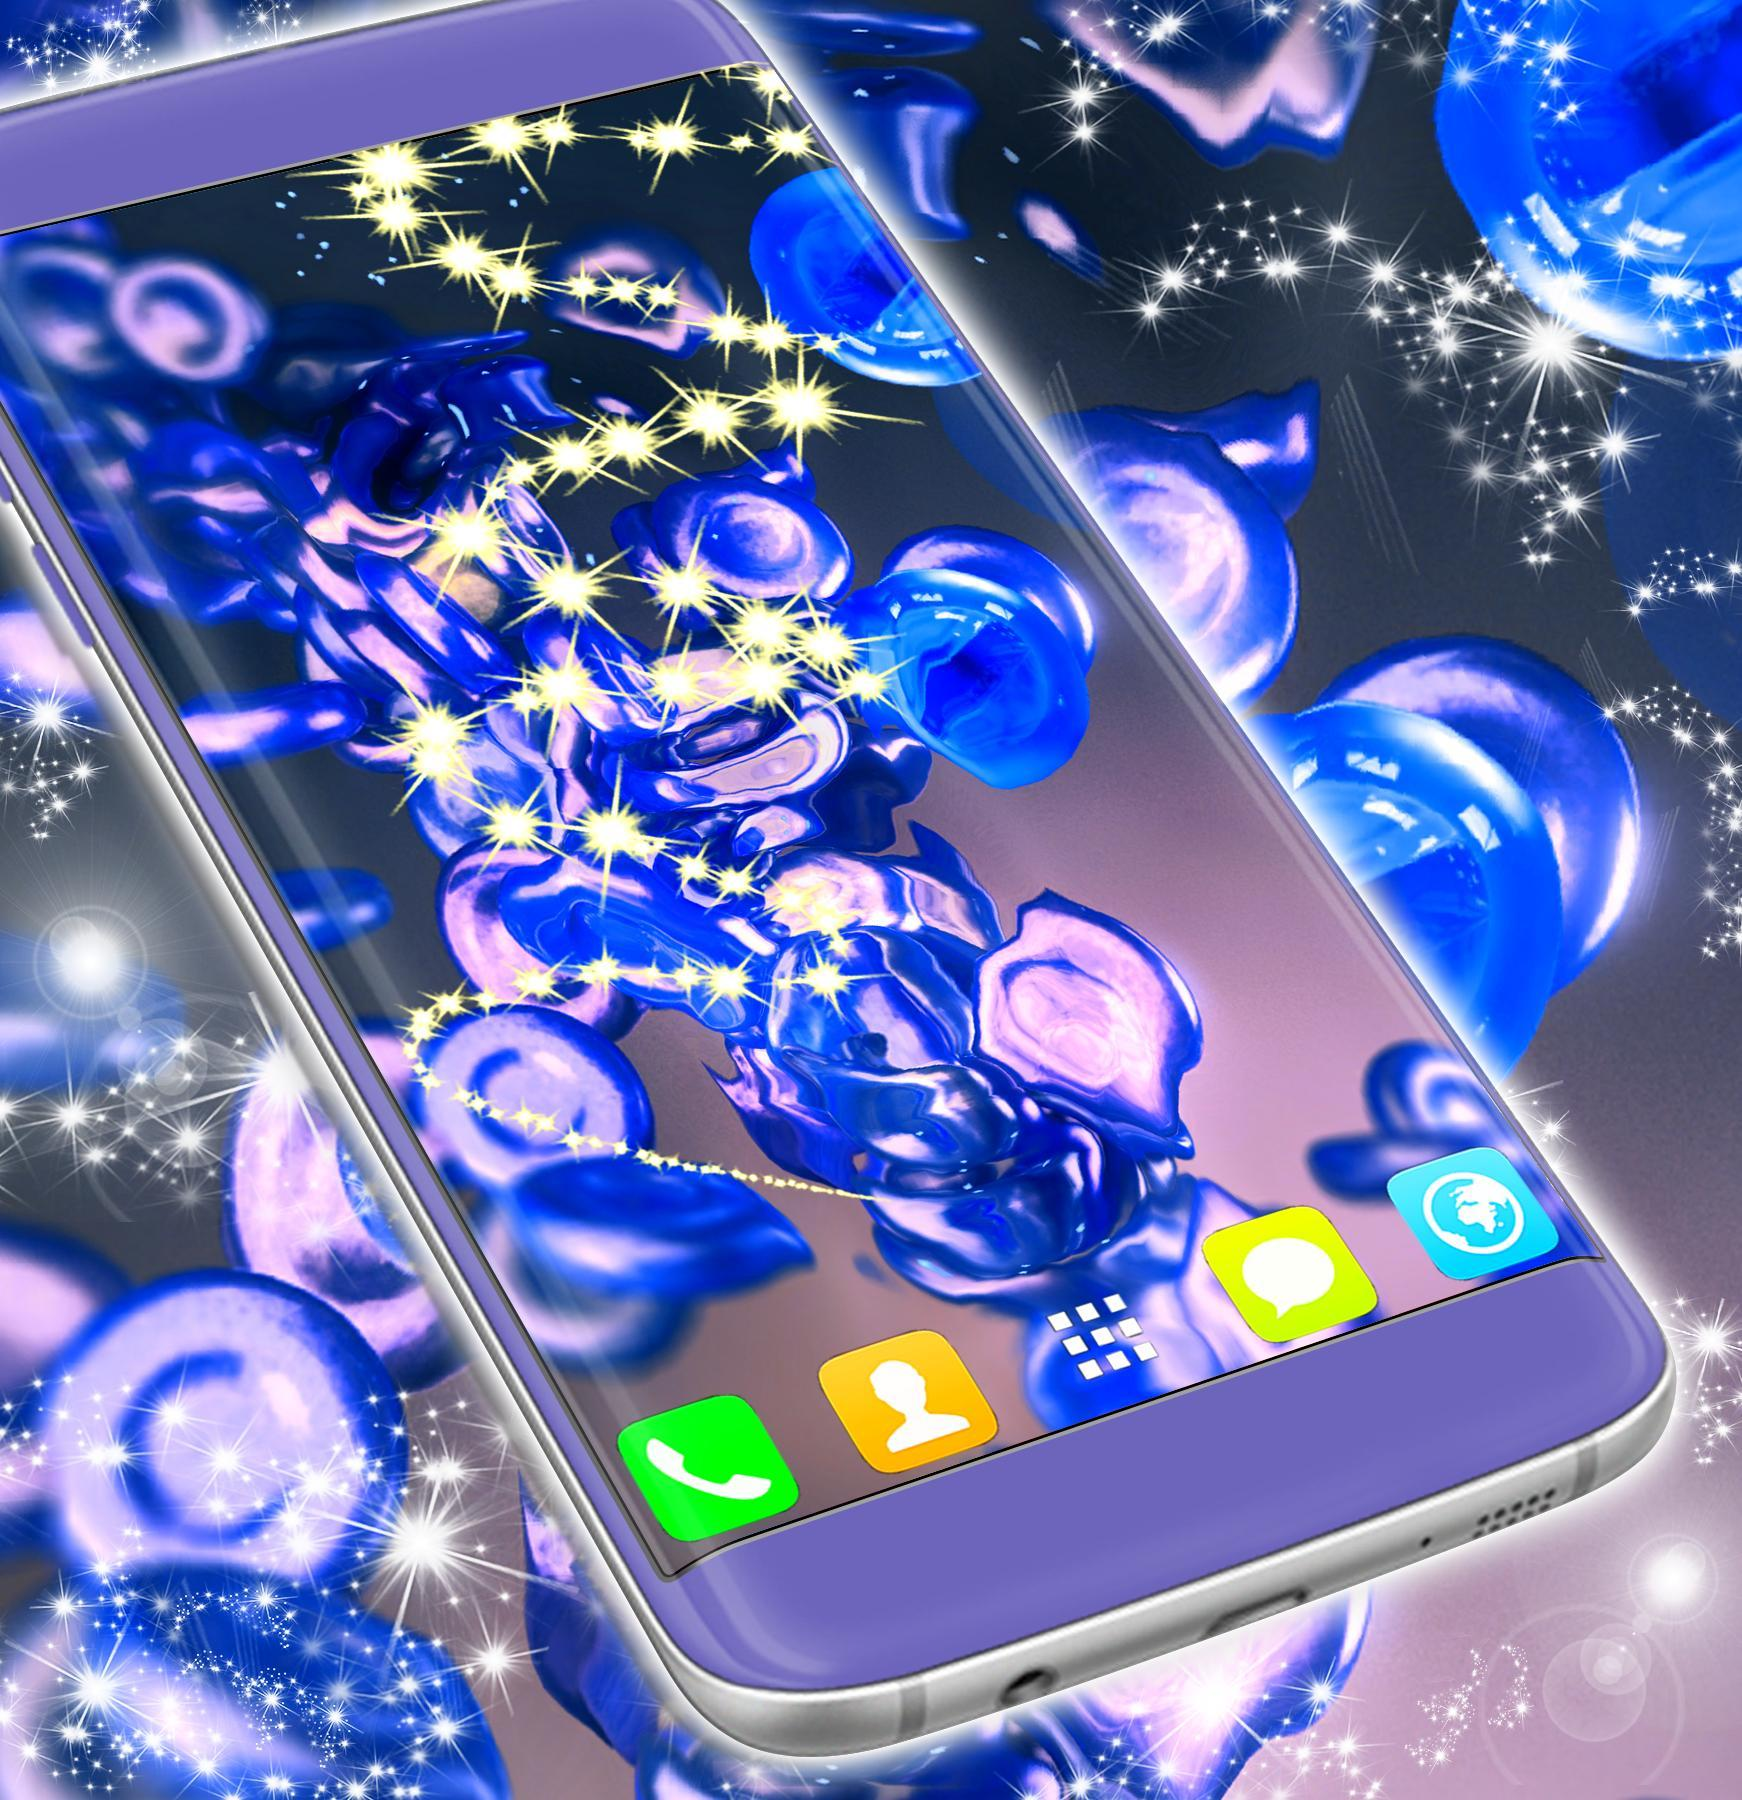 2018 3D Live Wallpaper For Android APK Download